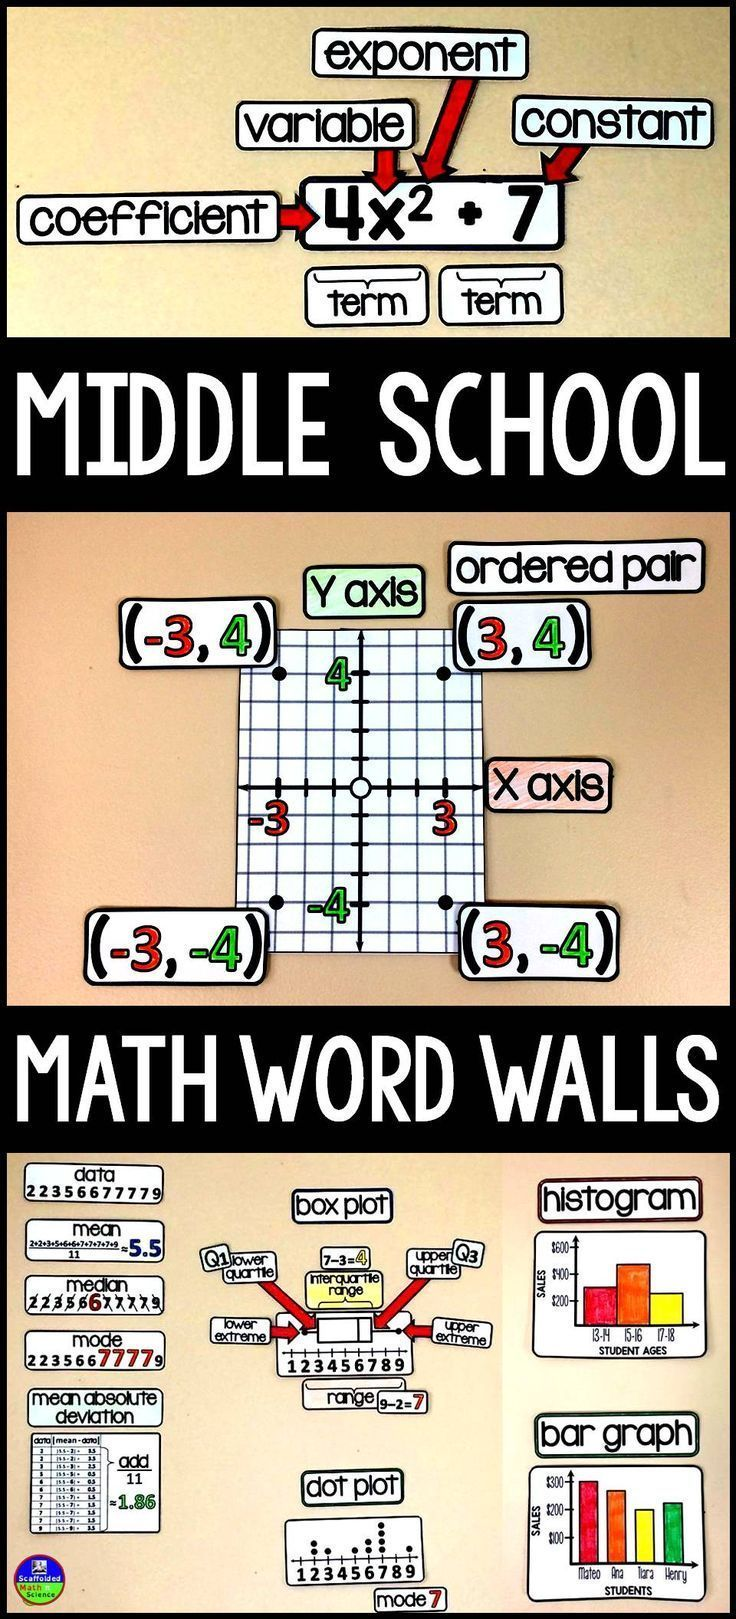 Math word walls for 6th grade, 7th grade and 8th grade. There is also a link to a 5th grade math word wall. The vocabulary is shown in context, allowing better access for ELL students and students with special needs. The visuals in these math word walls are engaging classroom decor. #mathwordwalls #middleschoolmath